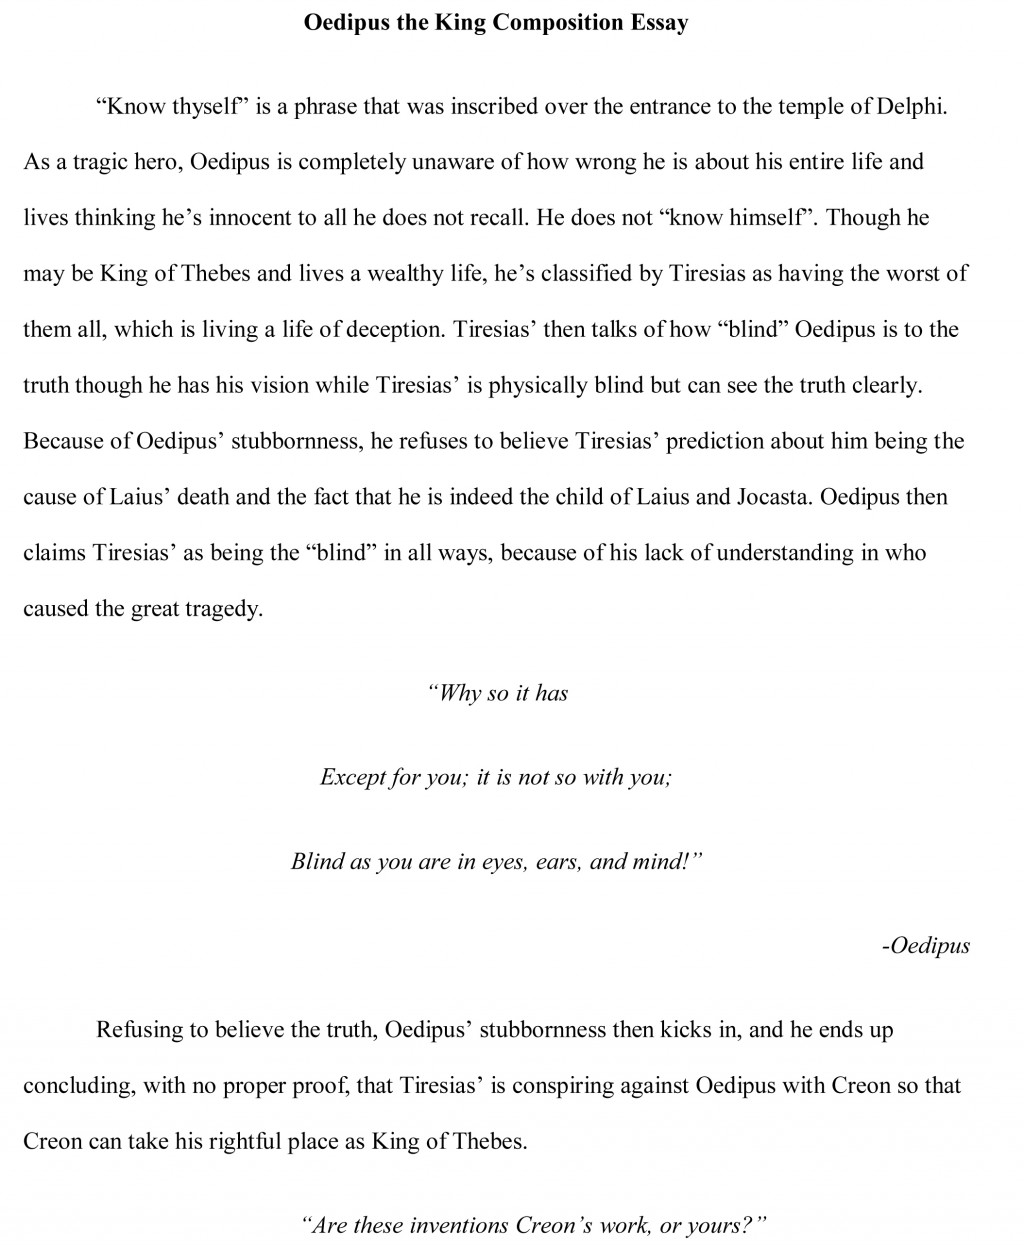 023 Good Essay Hooks Oedipus Free Sample Rare Quotes For Narrative About Love Large